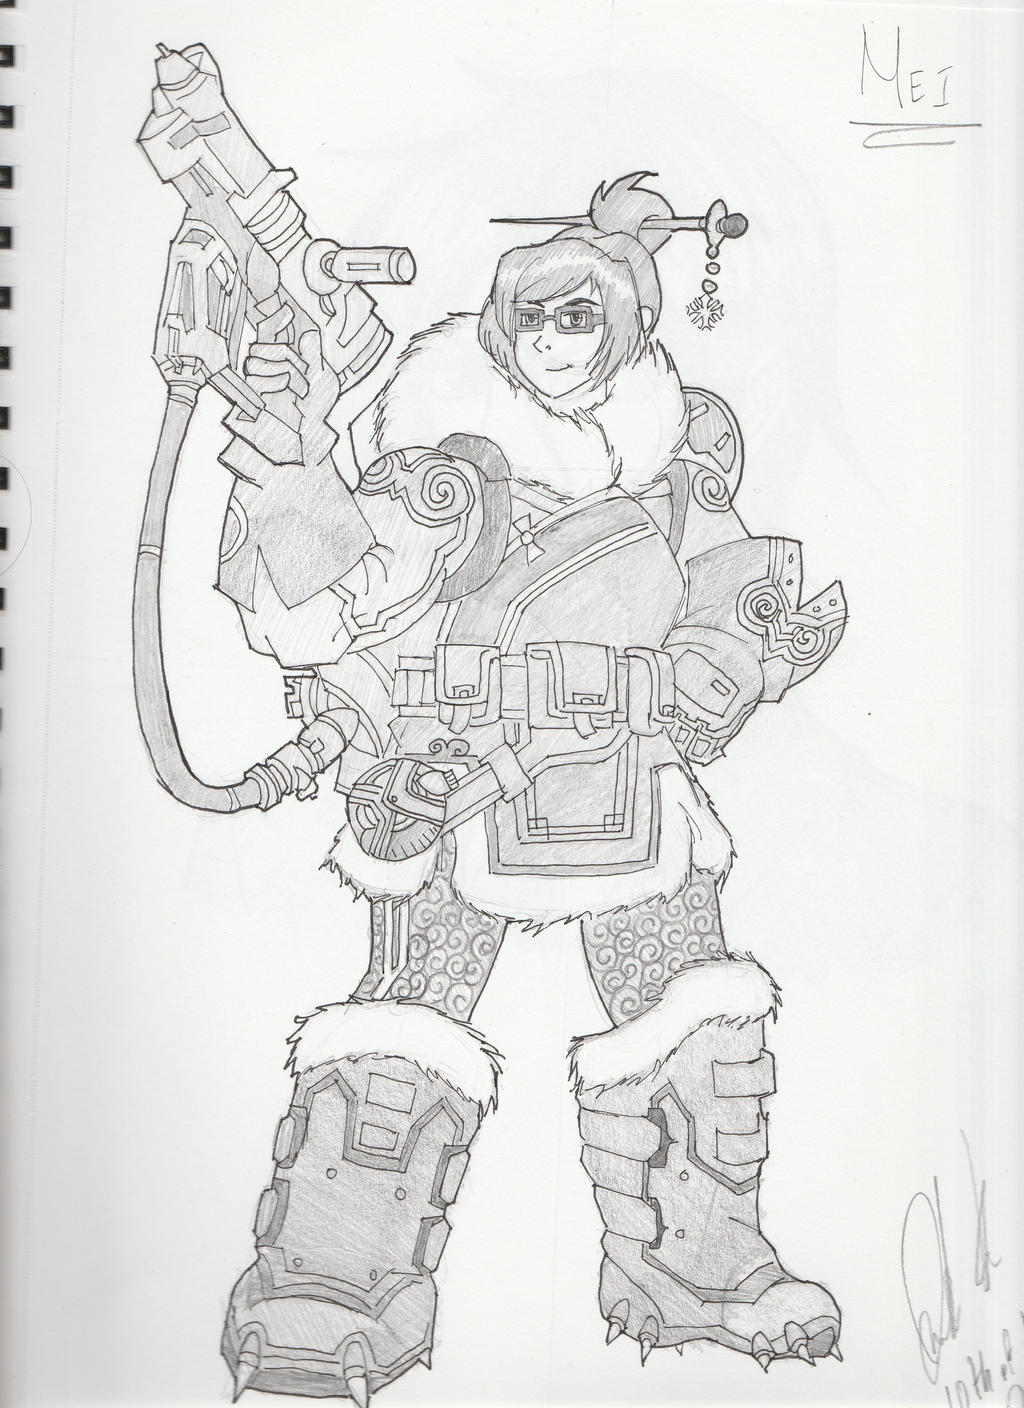 Overwatch Character Sketches Mei By JohnofMythDrannor On DeviantArt